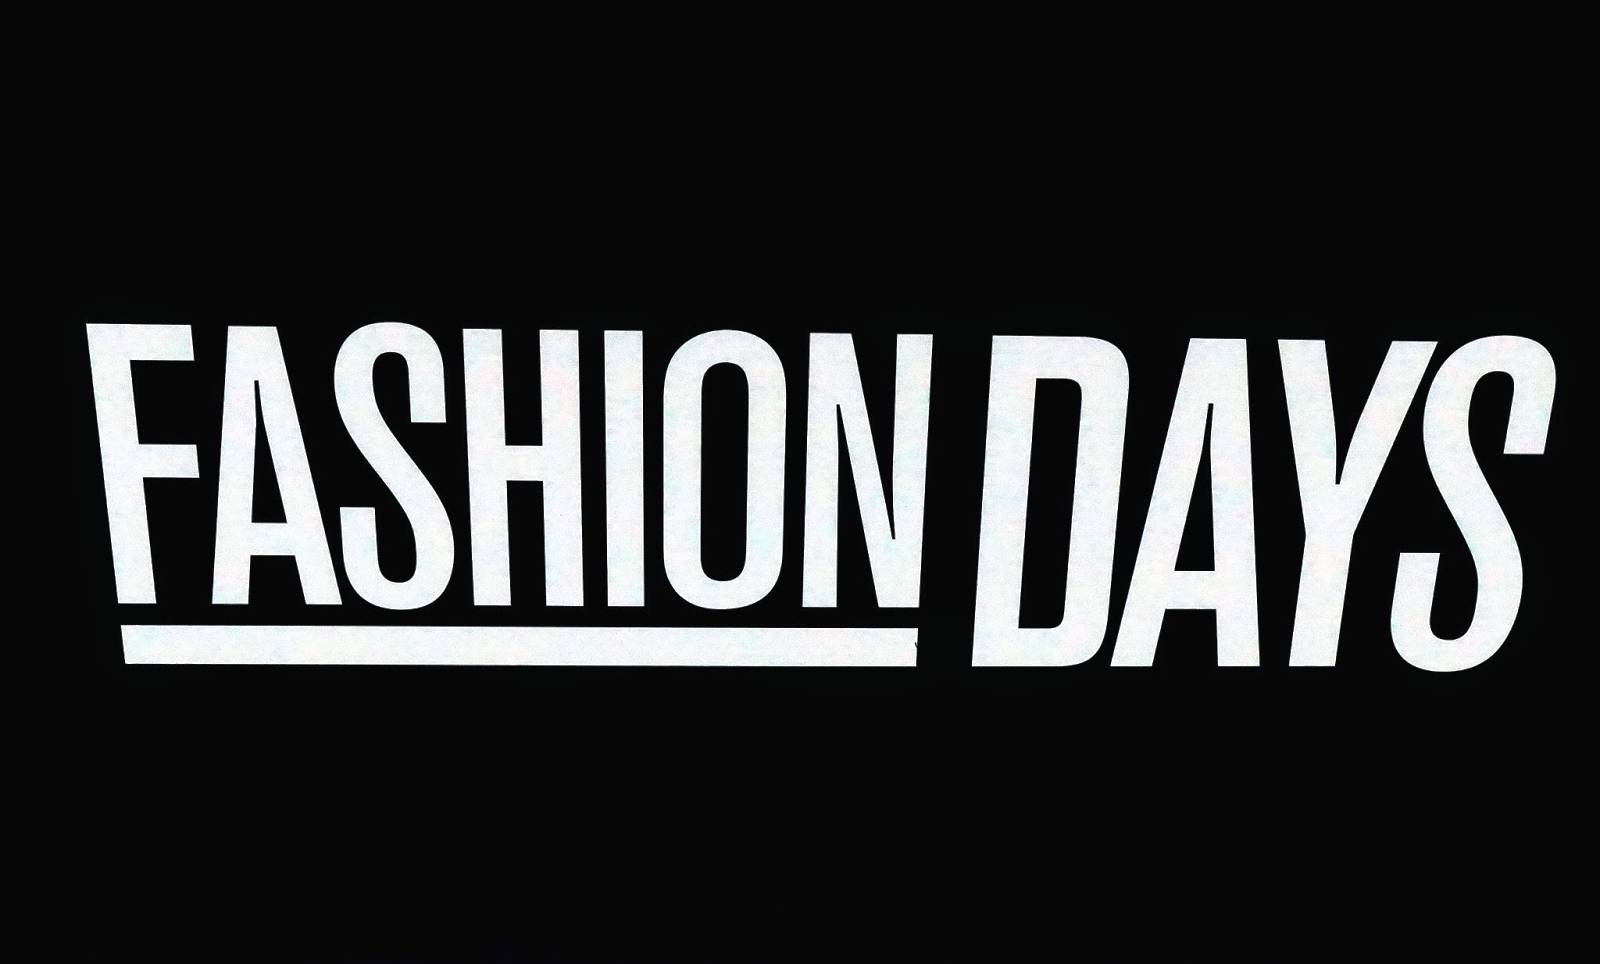 Fashion Days reduceri black friday 2019